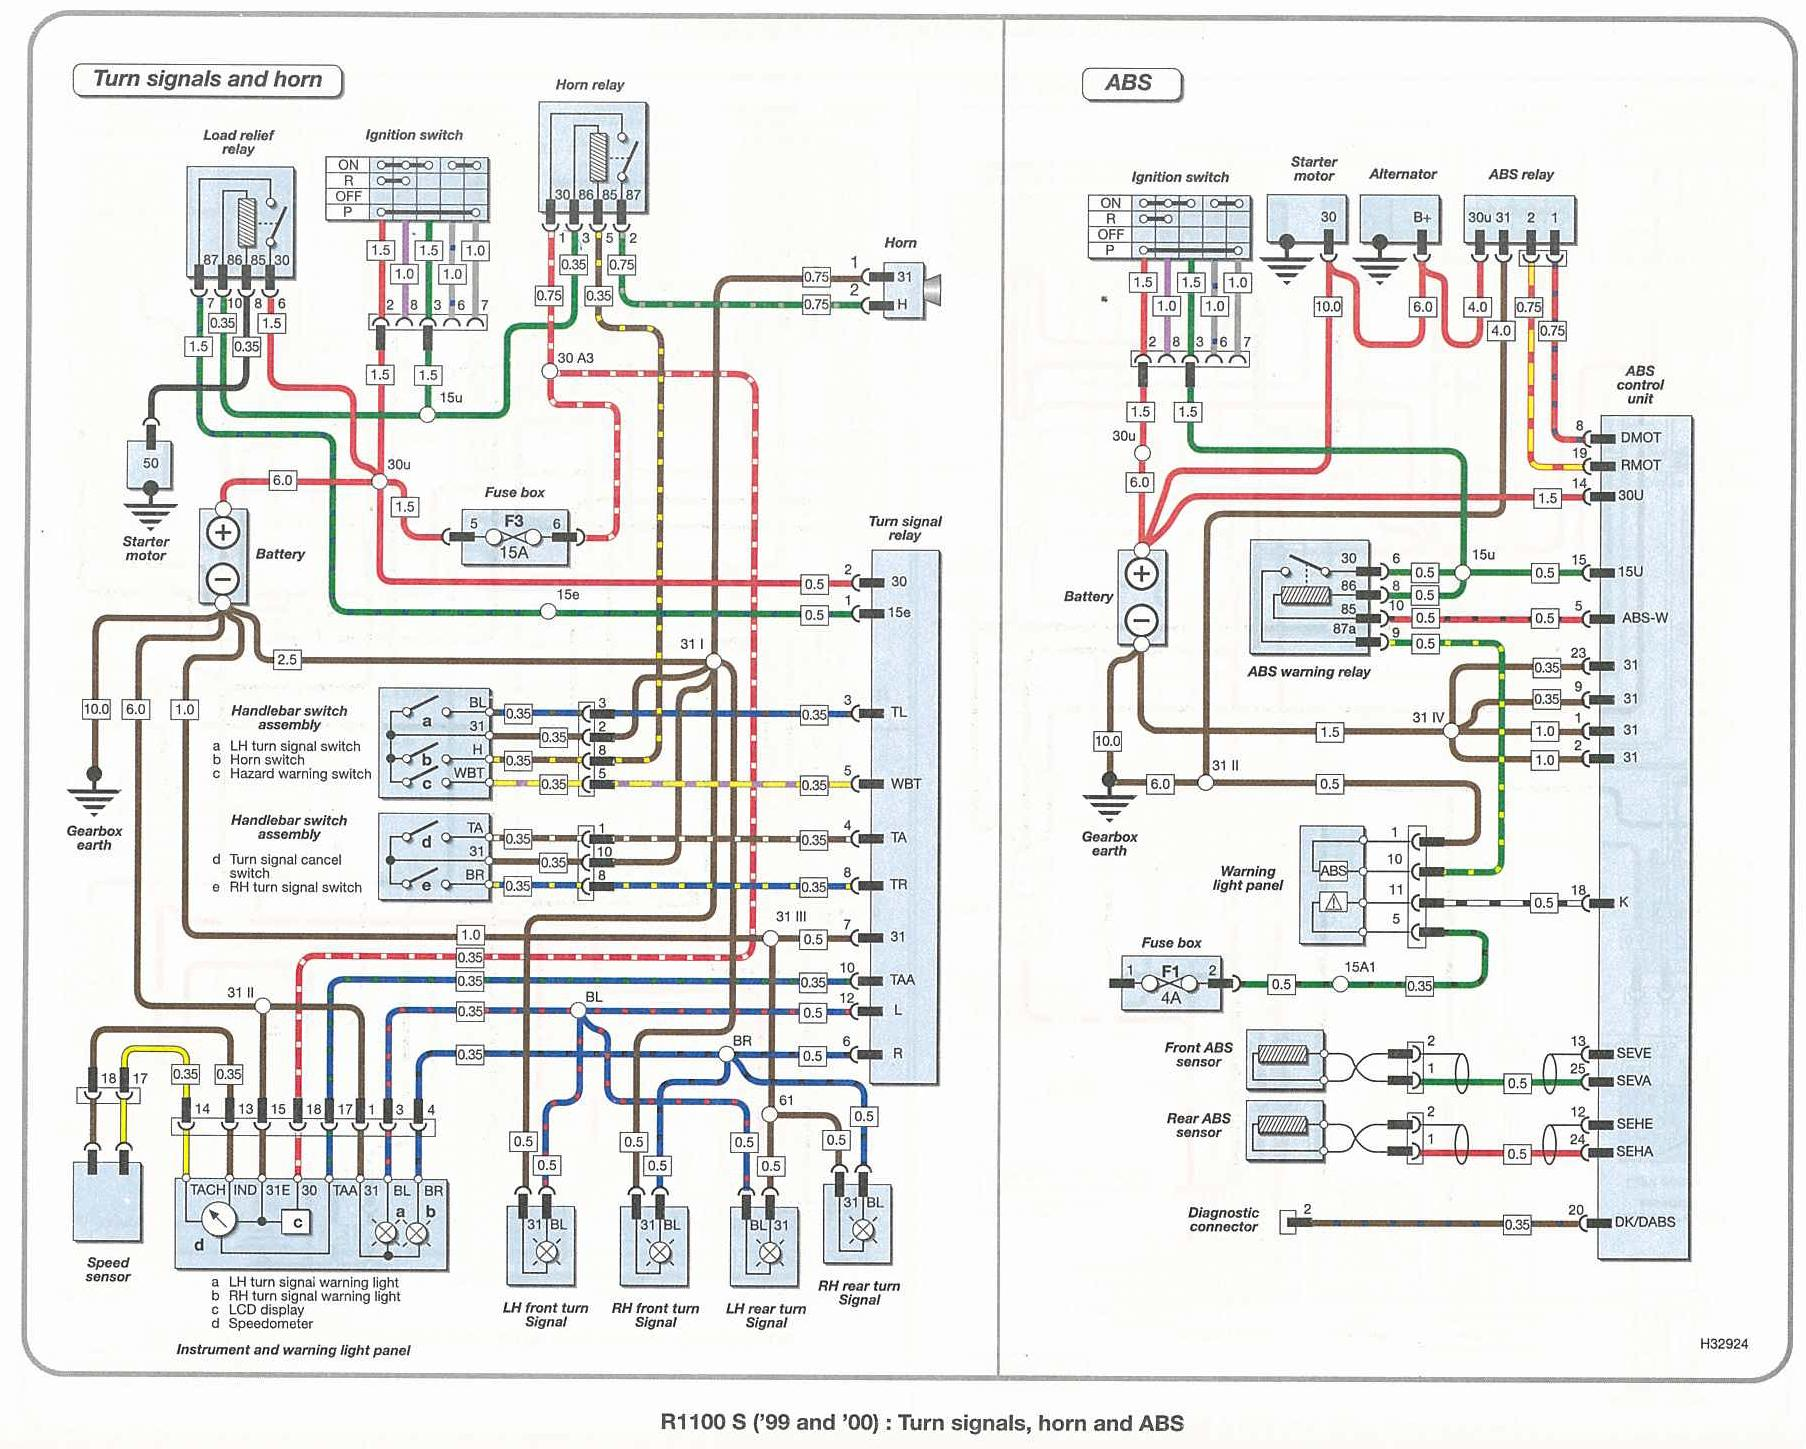 wiring03 bmw wiring diagram bmw wiring diagrams e39 \u2022 wiring diagrams j bmw r75/5 wiring diagram at gsmx.co